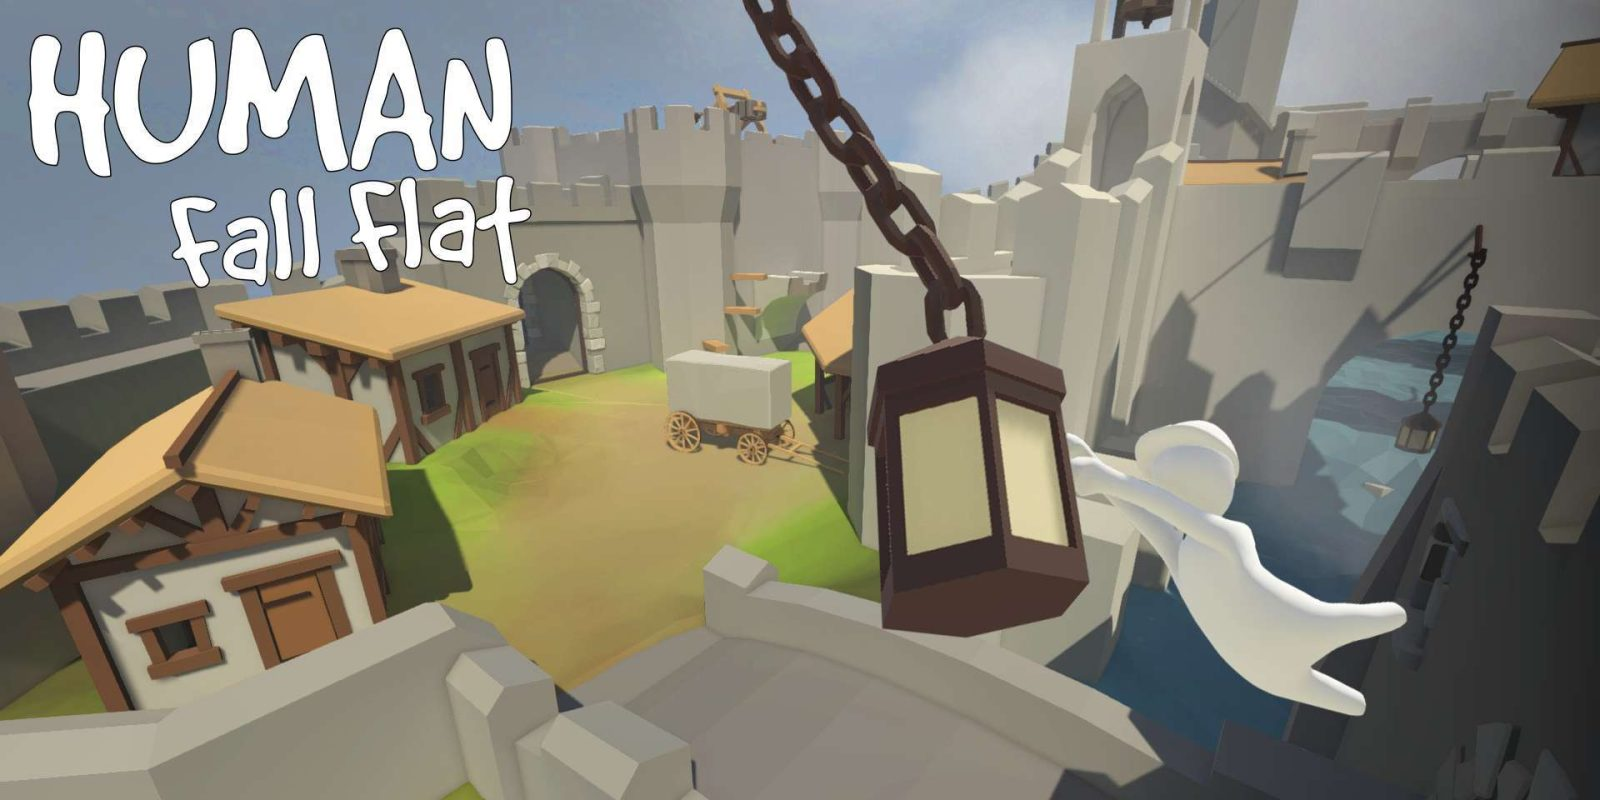 Human Fall Flat & its hilarious physics gameplay hit iOS/Android next week